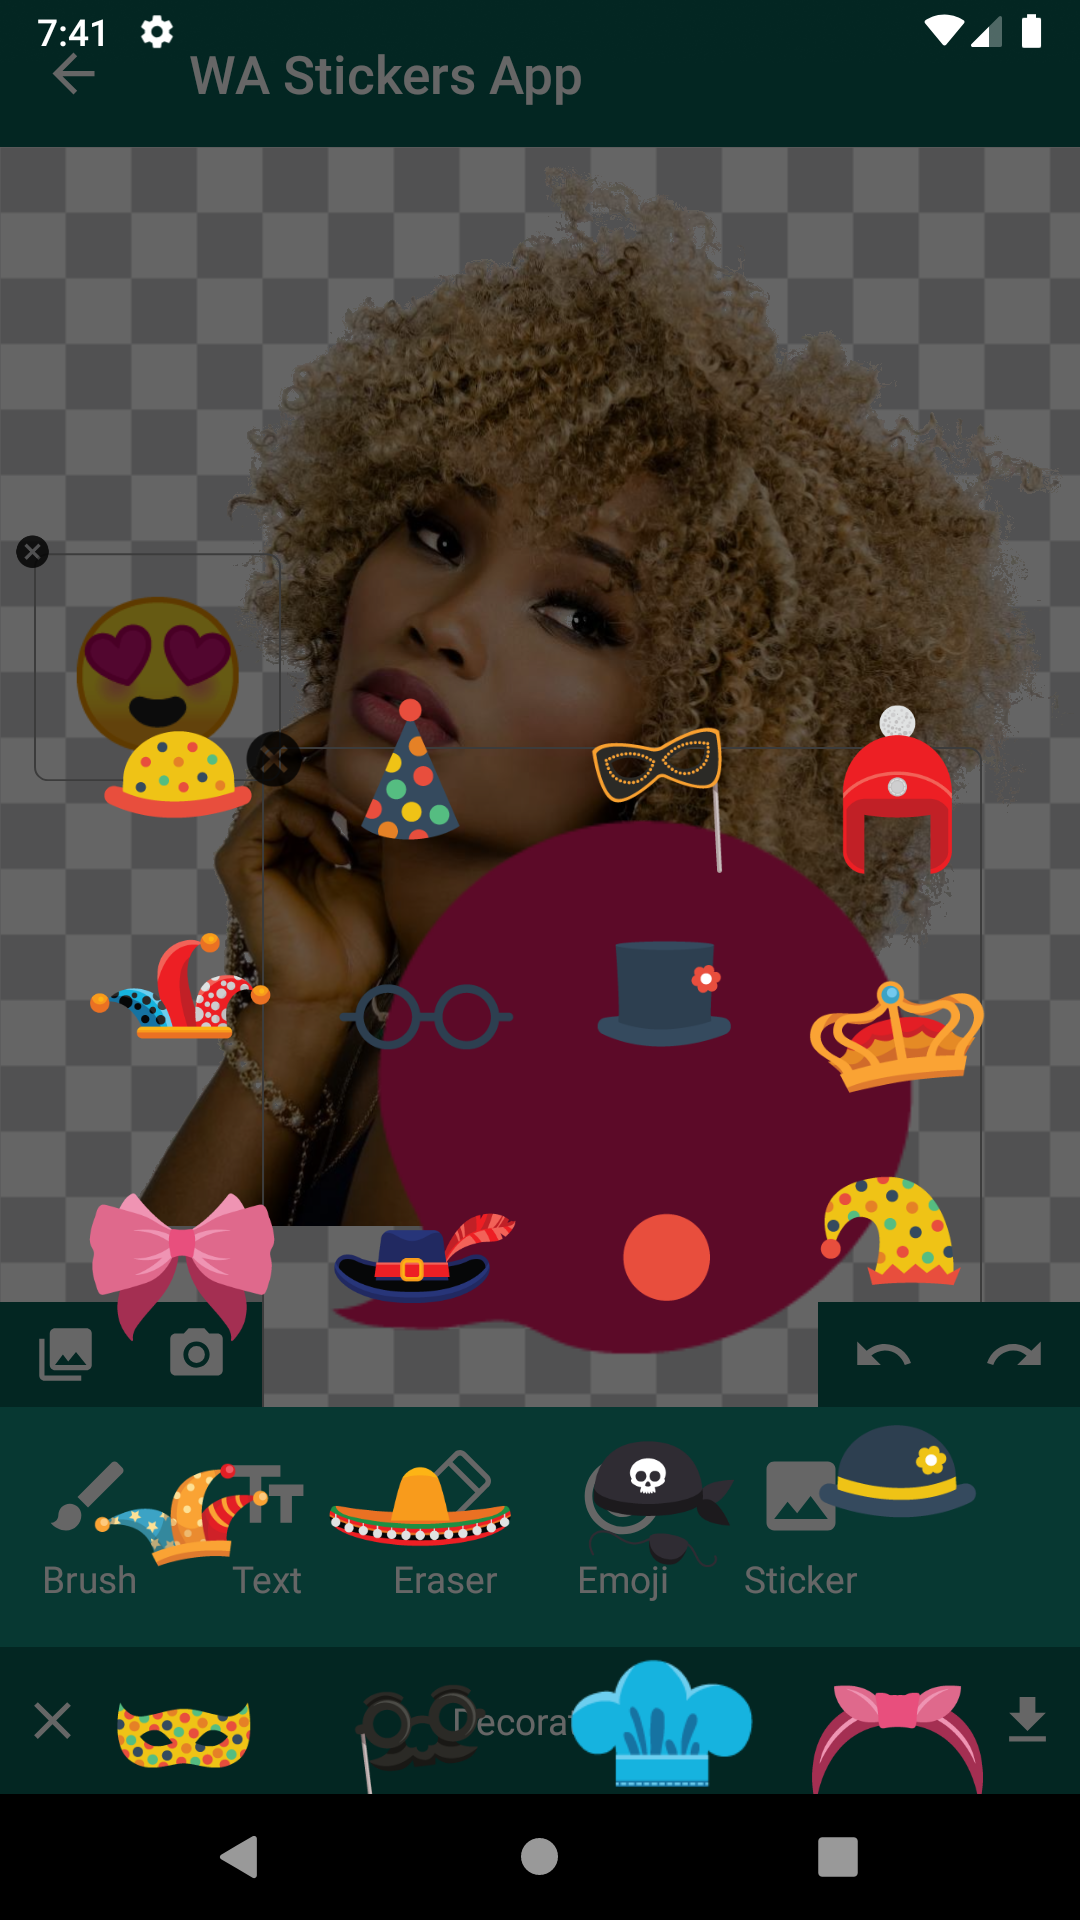 Emrys Online Android Stickers App for WhatsApp with Sticker Maker